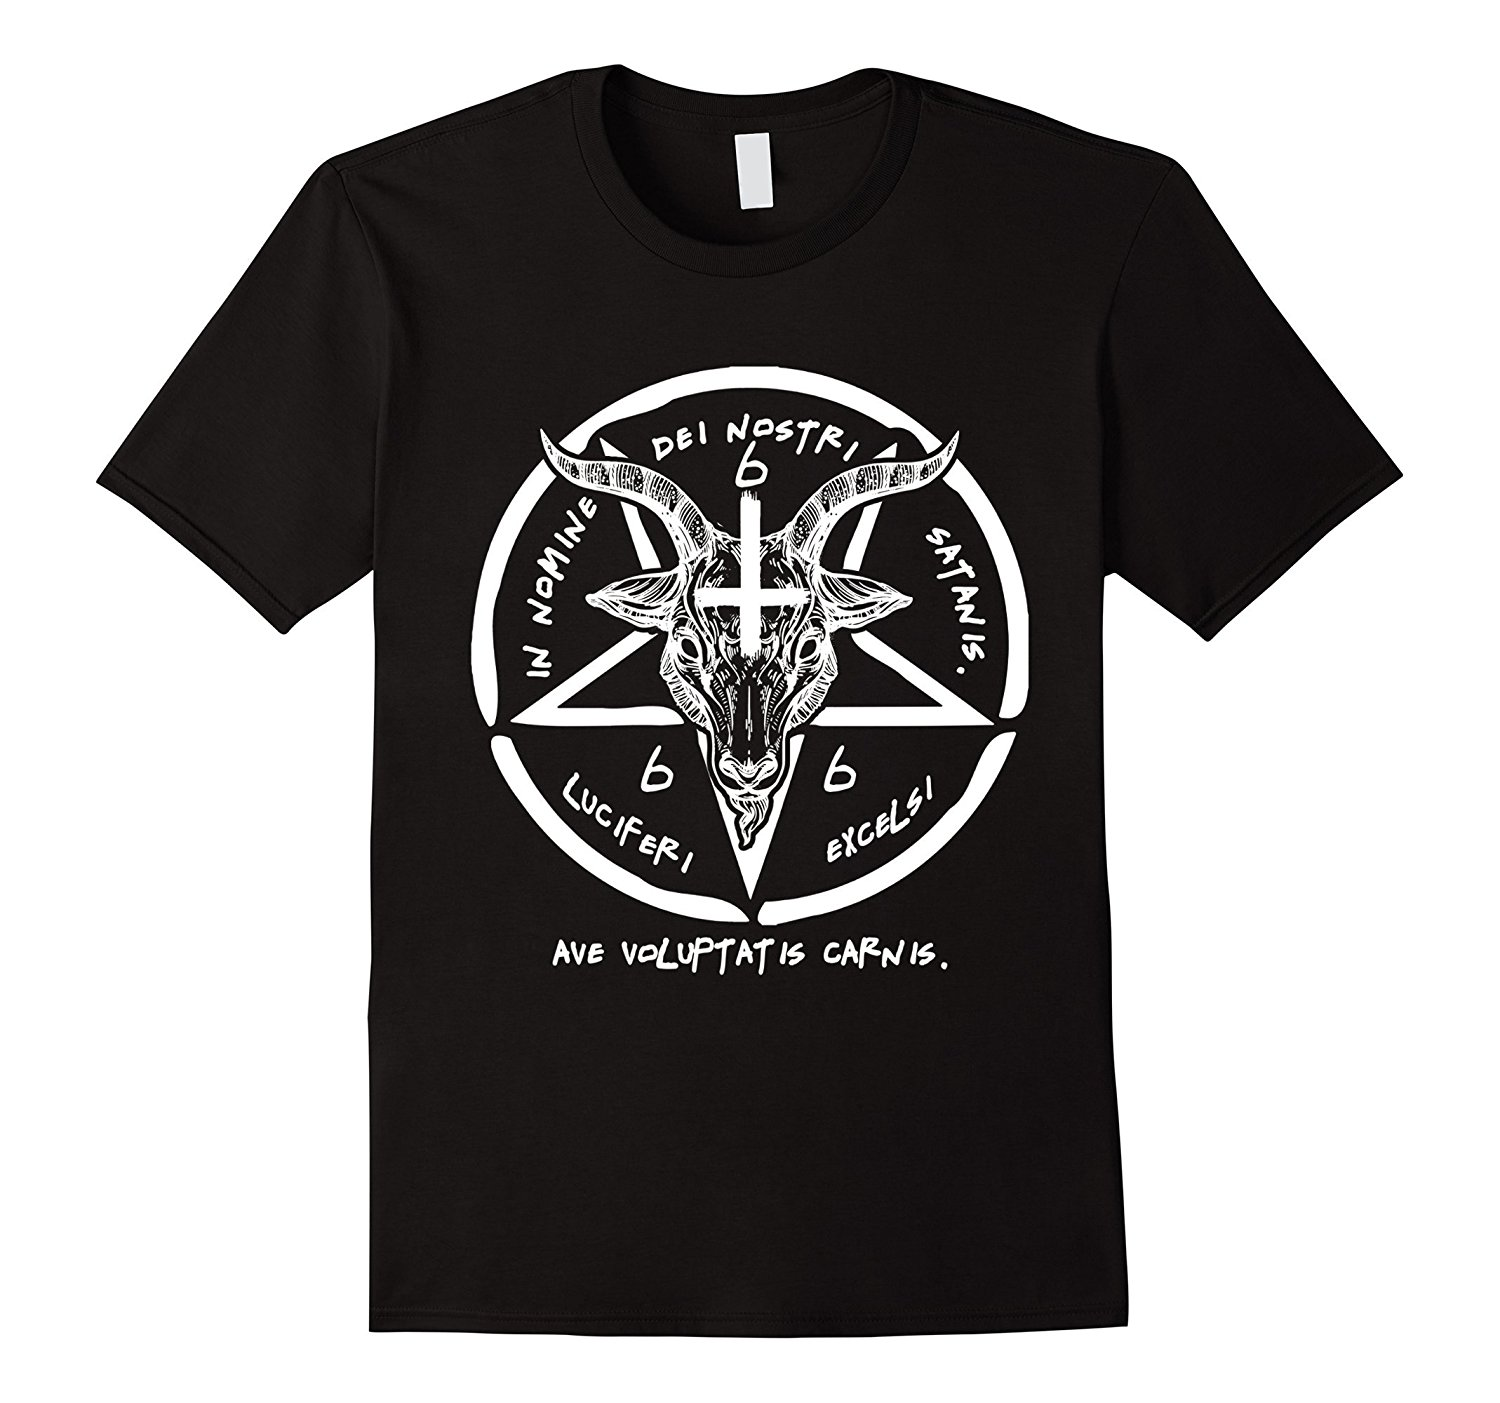 BAPHOMET TSHIRT - SIGIL OF SATAN THE GOAT HEAD GOD SHIRT Mens 100% Cotton Short Sleeve Print Cool Funny T-Shirt Men High Quality